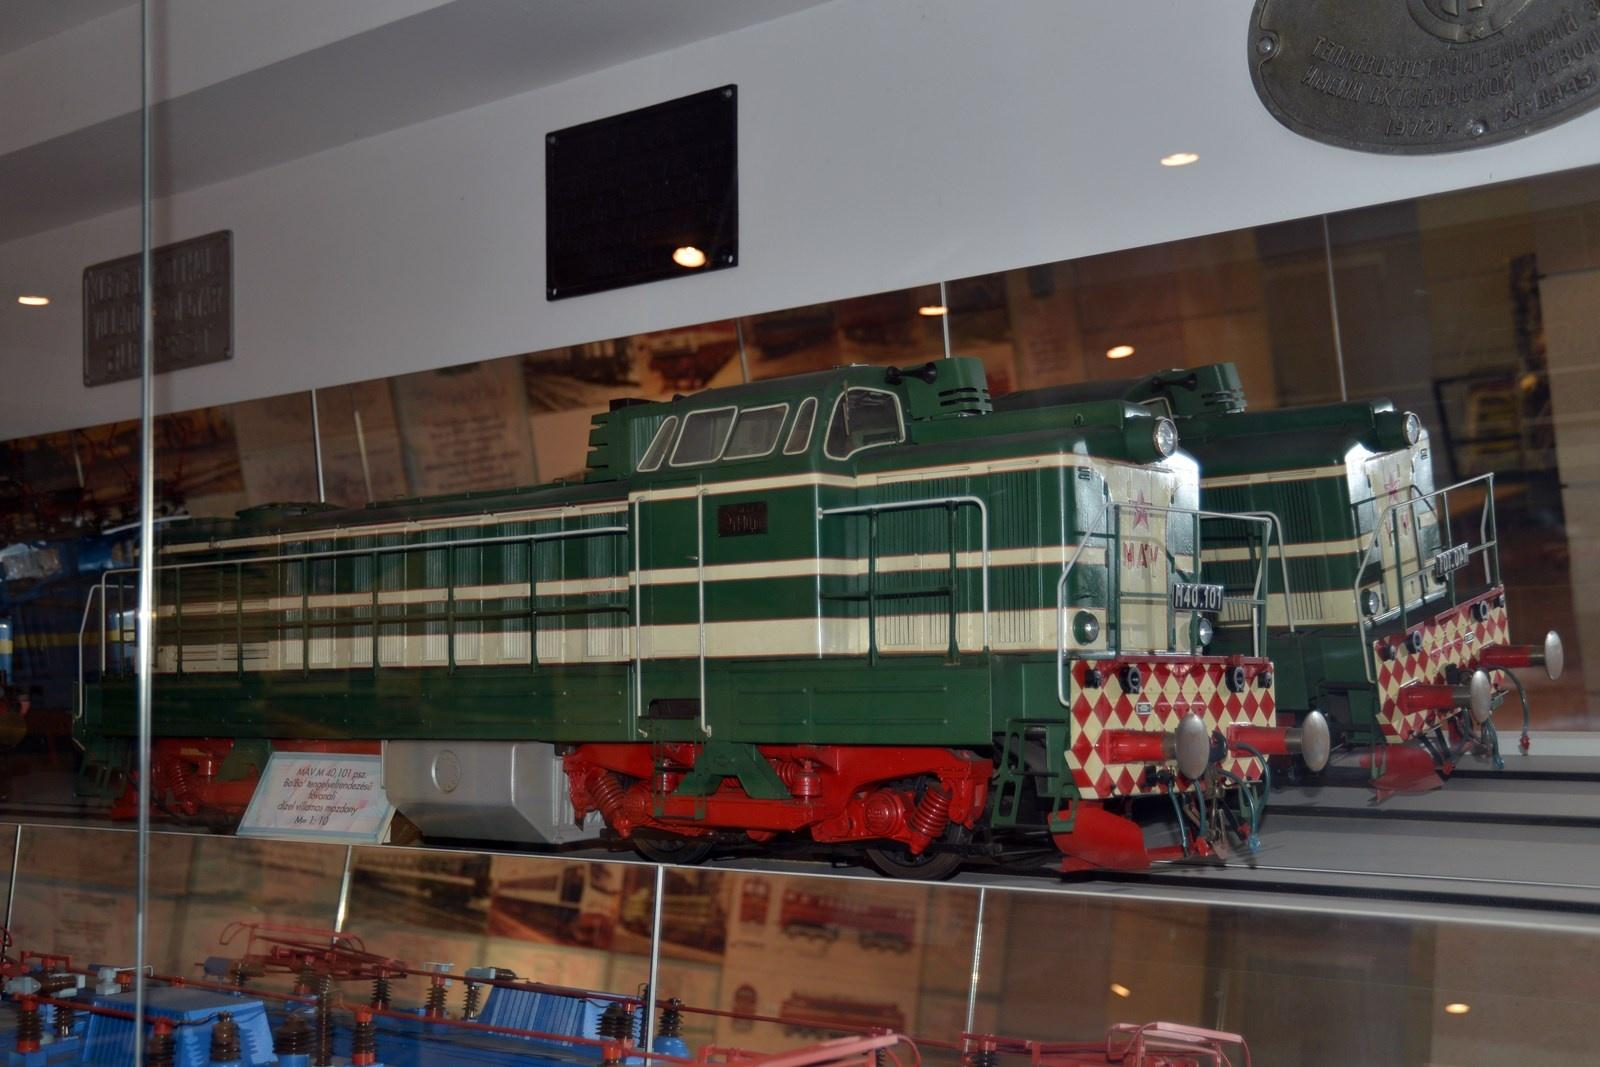 Budapest Transport Museum Objects On Show At House Of European History In Brussels